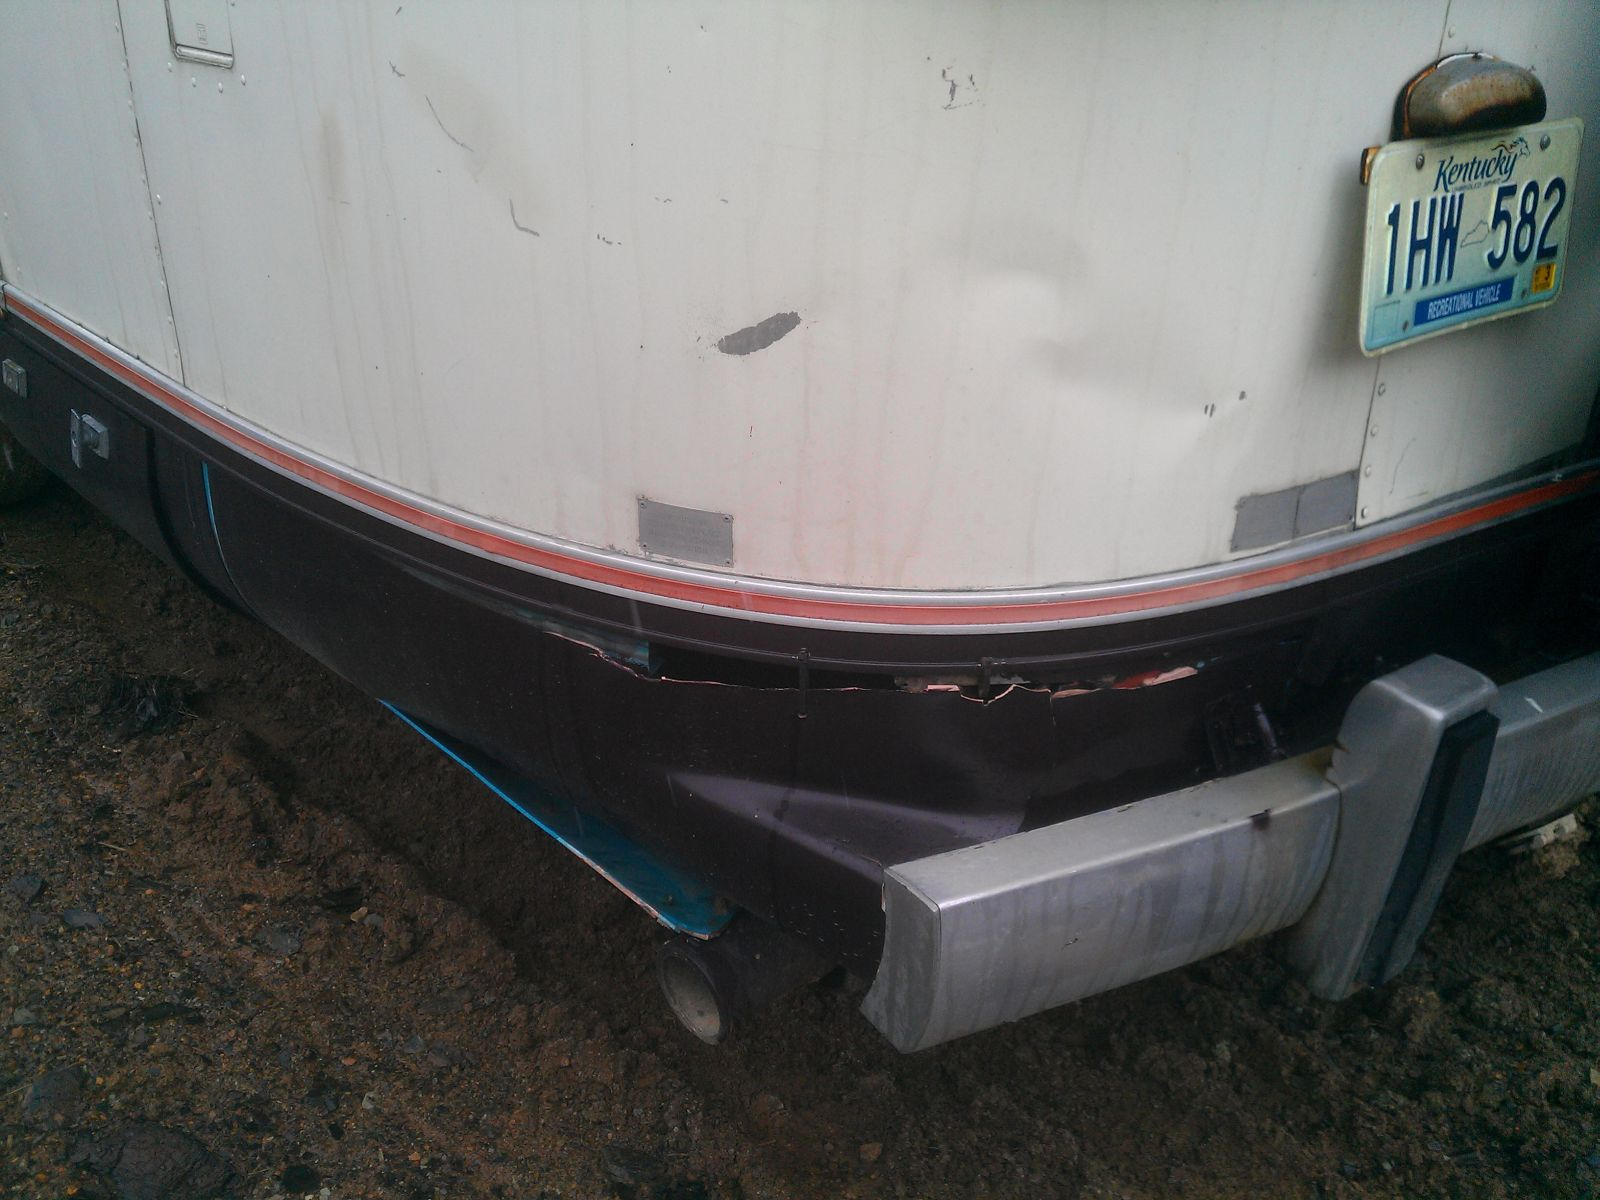 Click image for larger version  Name:Argosy-28-left-rear-damage.jpg Views:62 Size:242.3 KB ID:180127